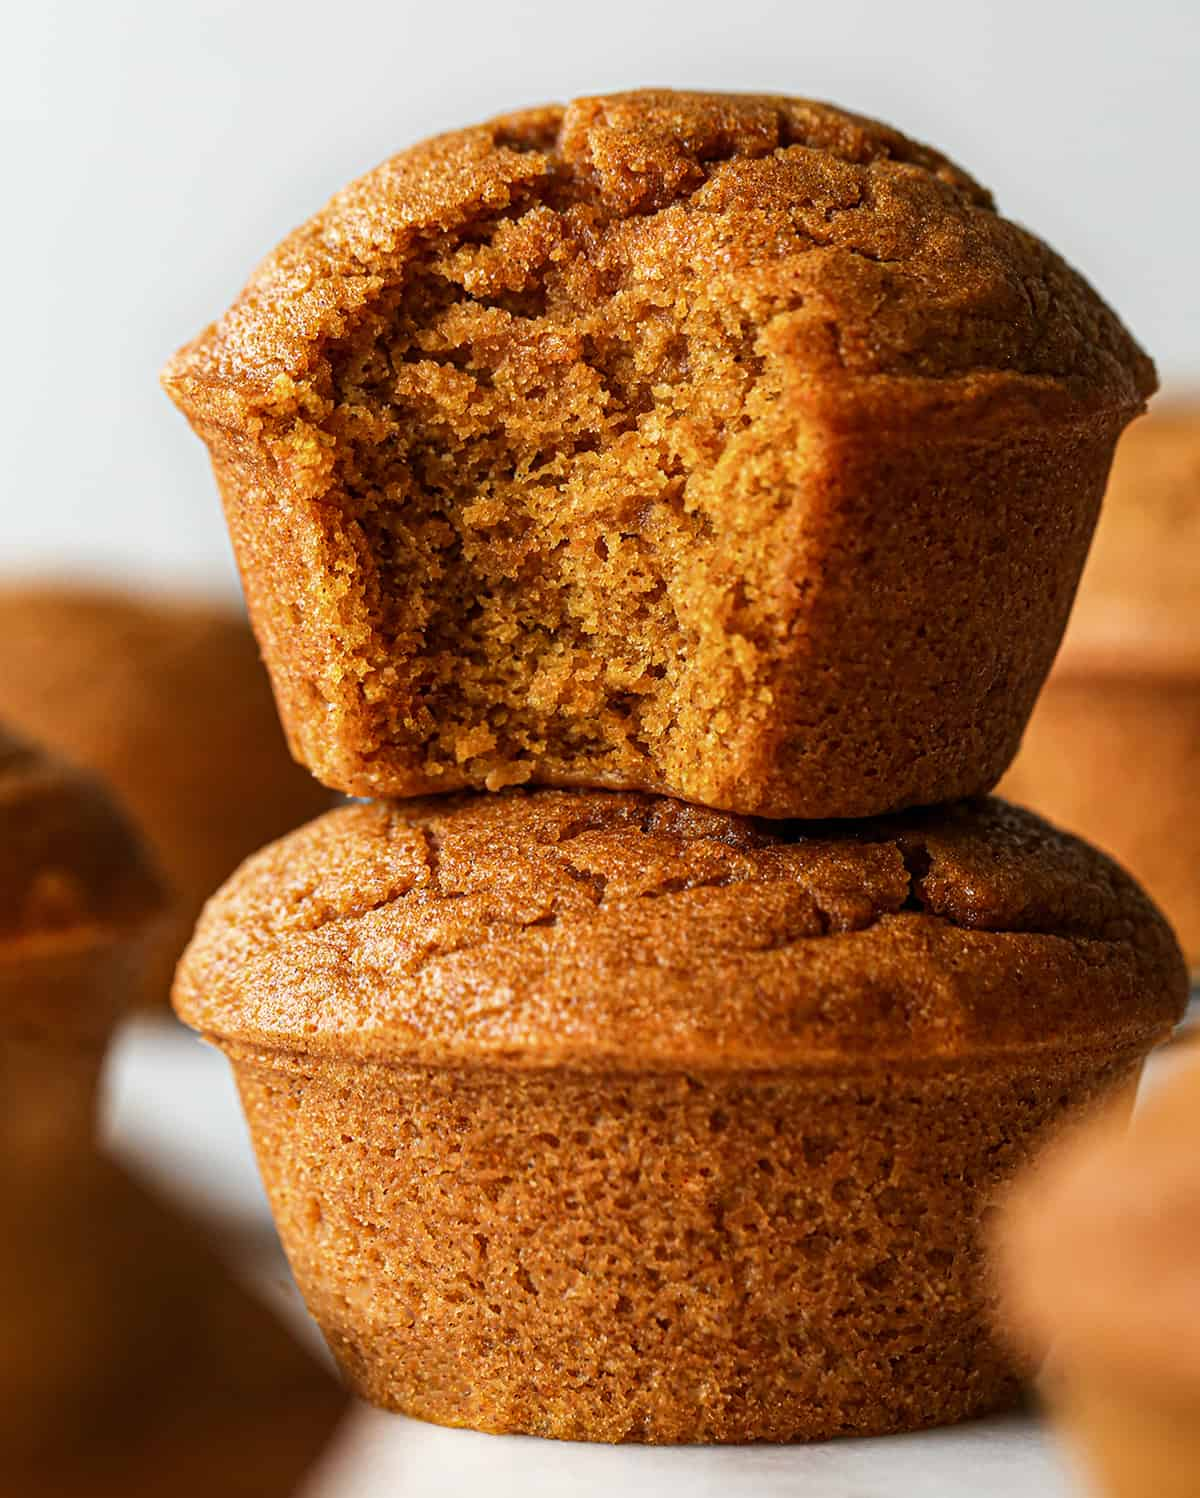 a stack of two Pumpkin Muffins, the top one has a bite taken out of it